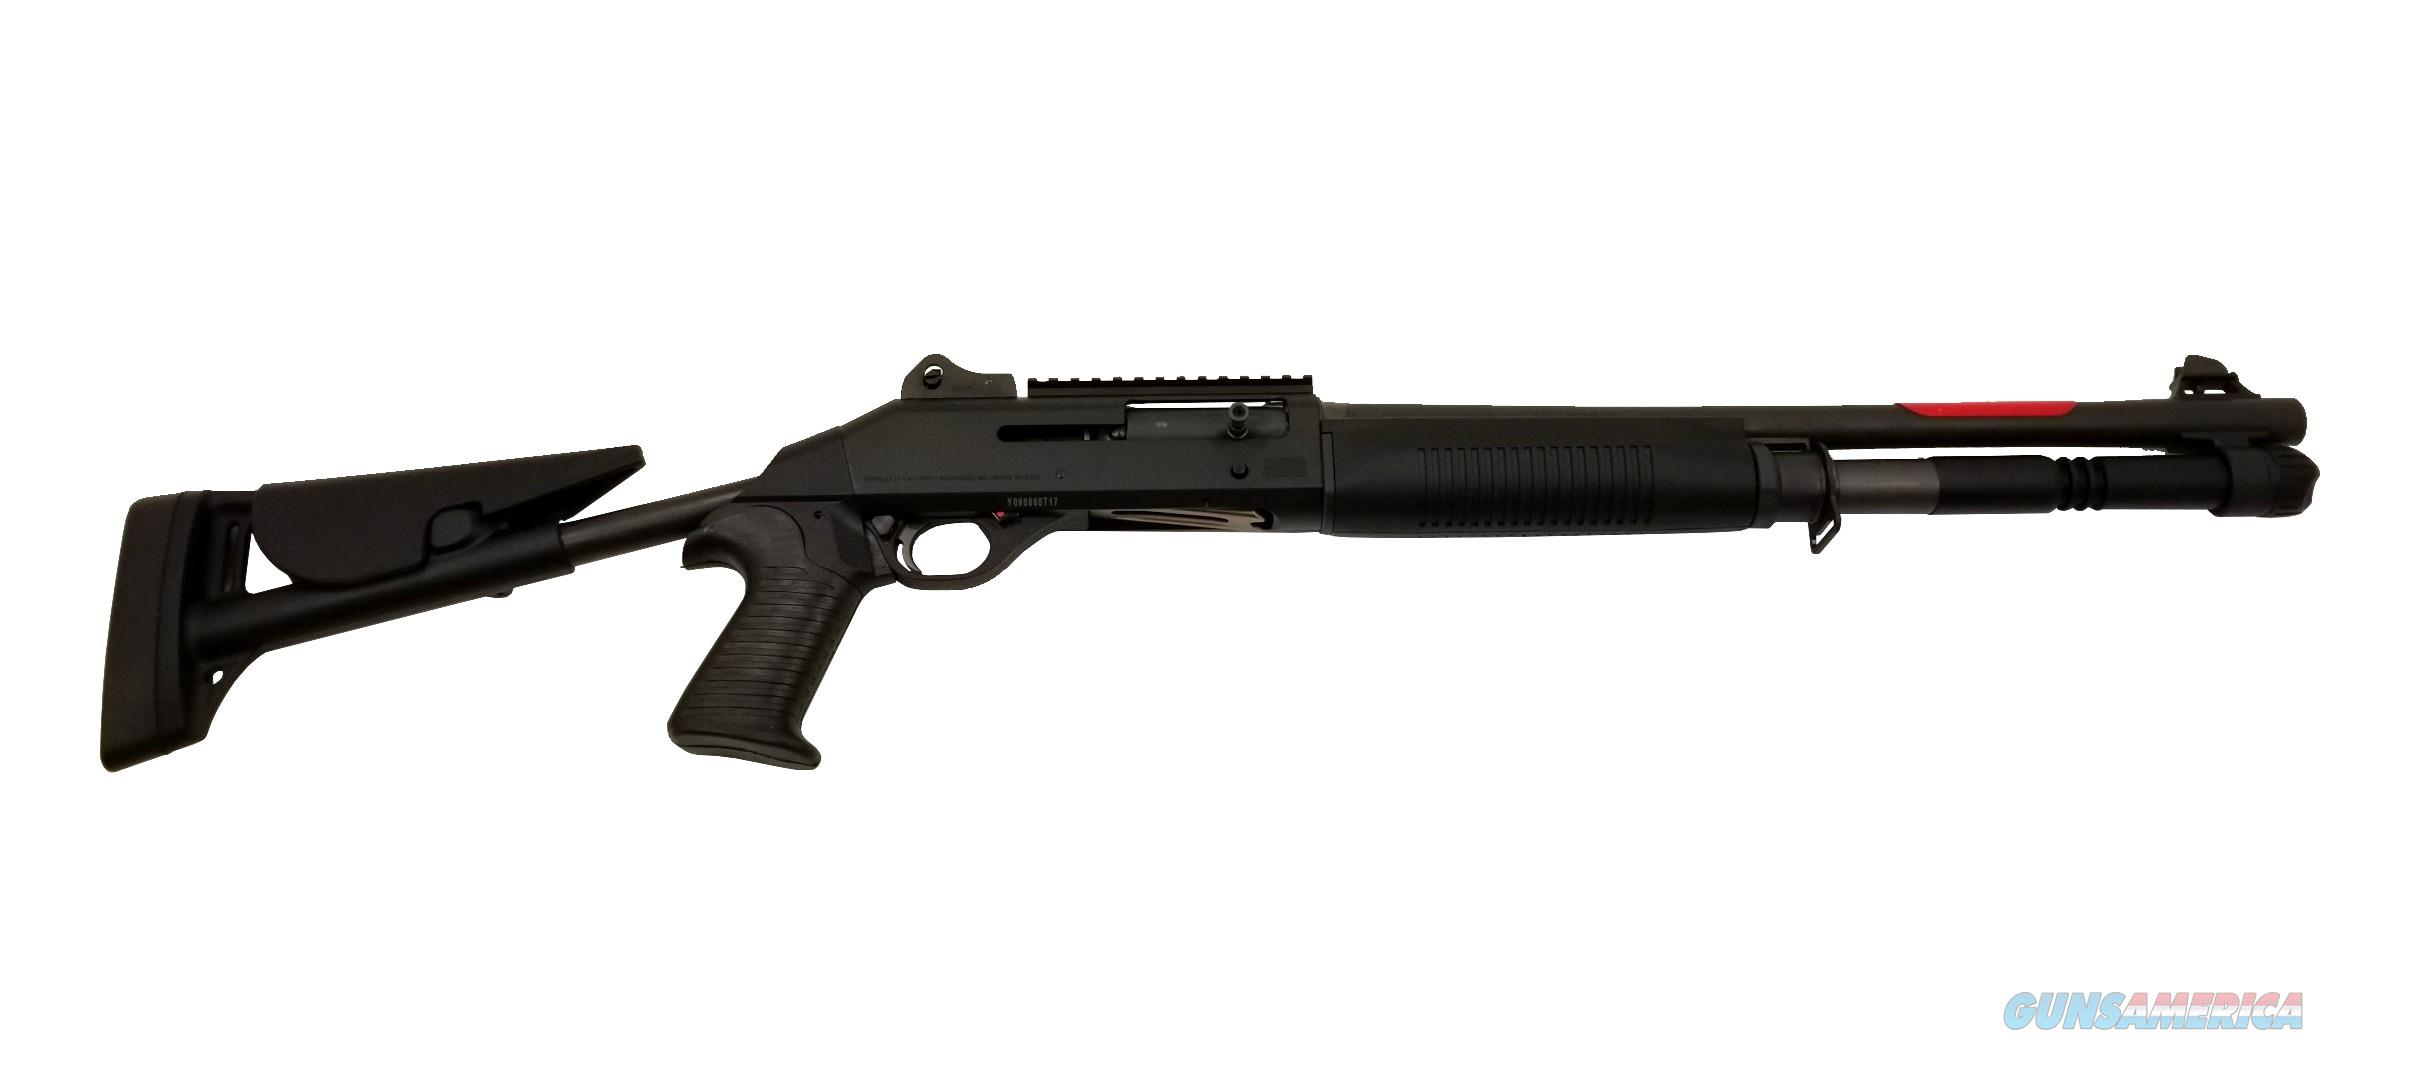 BENELLI M1014 LIMITED EDITION 12GA 11701 M4 NEW  Guns > Shotguns > Benelli Shotguns > Tactical